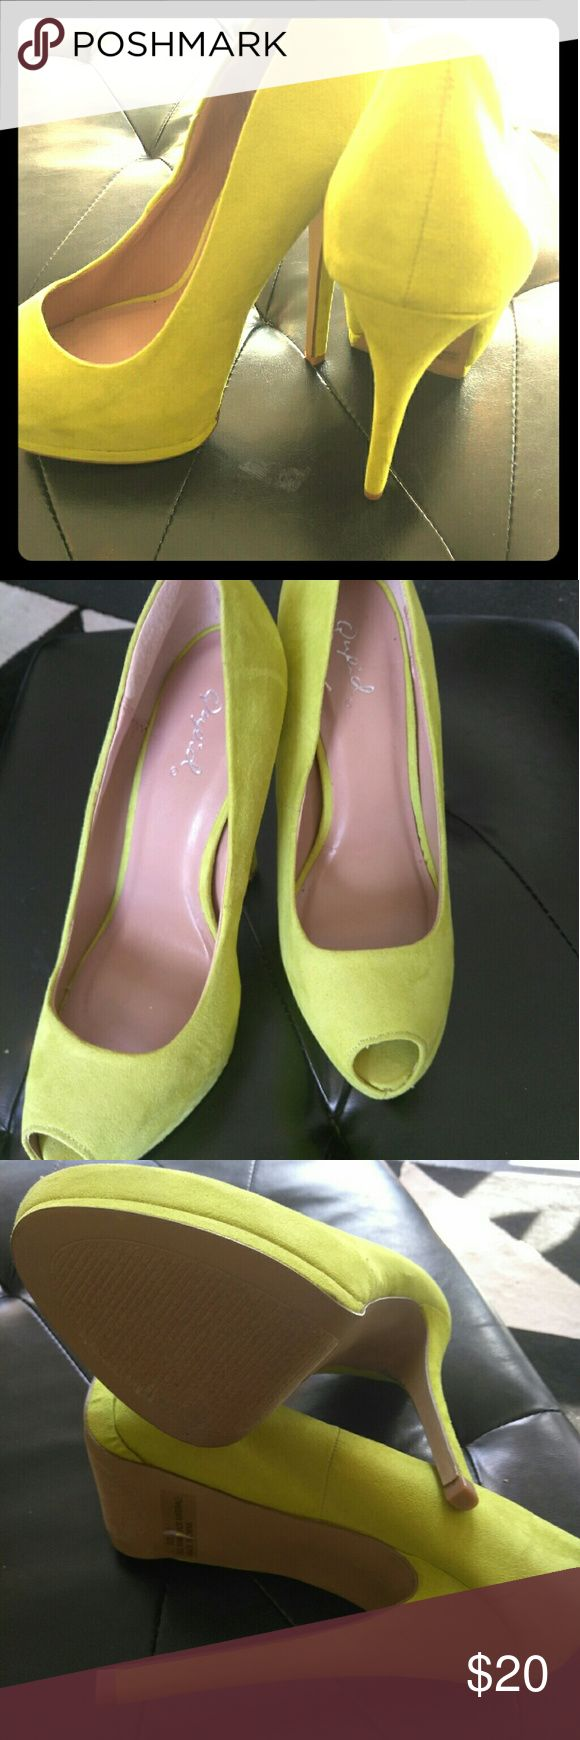 Lime Green Peep Toe Heels 5 inches Lime Green Peep Toe Heels 5 inches new never worn, comfortable, no marks, fabulous shoe! Qupid Shoes Heels